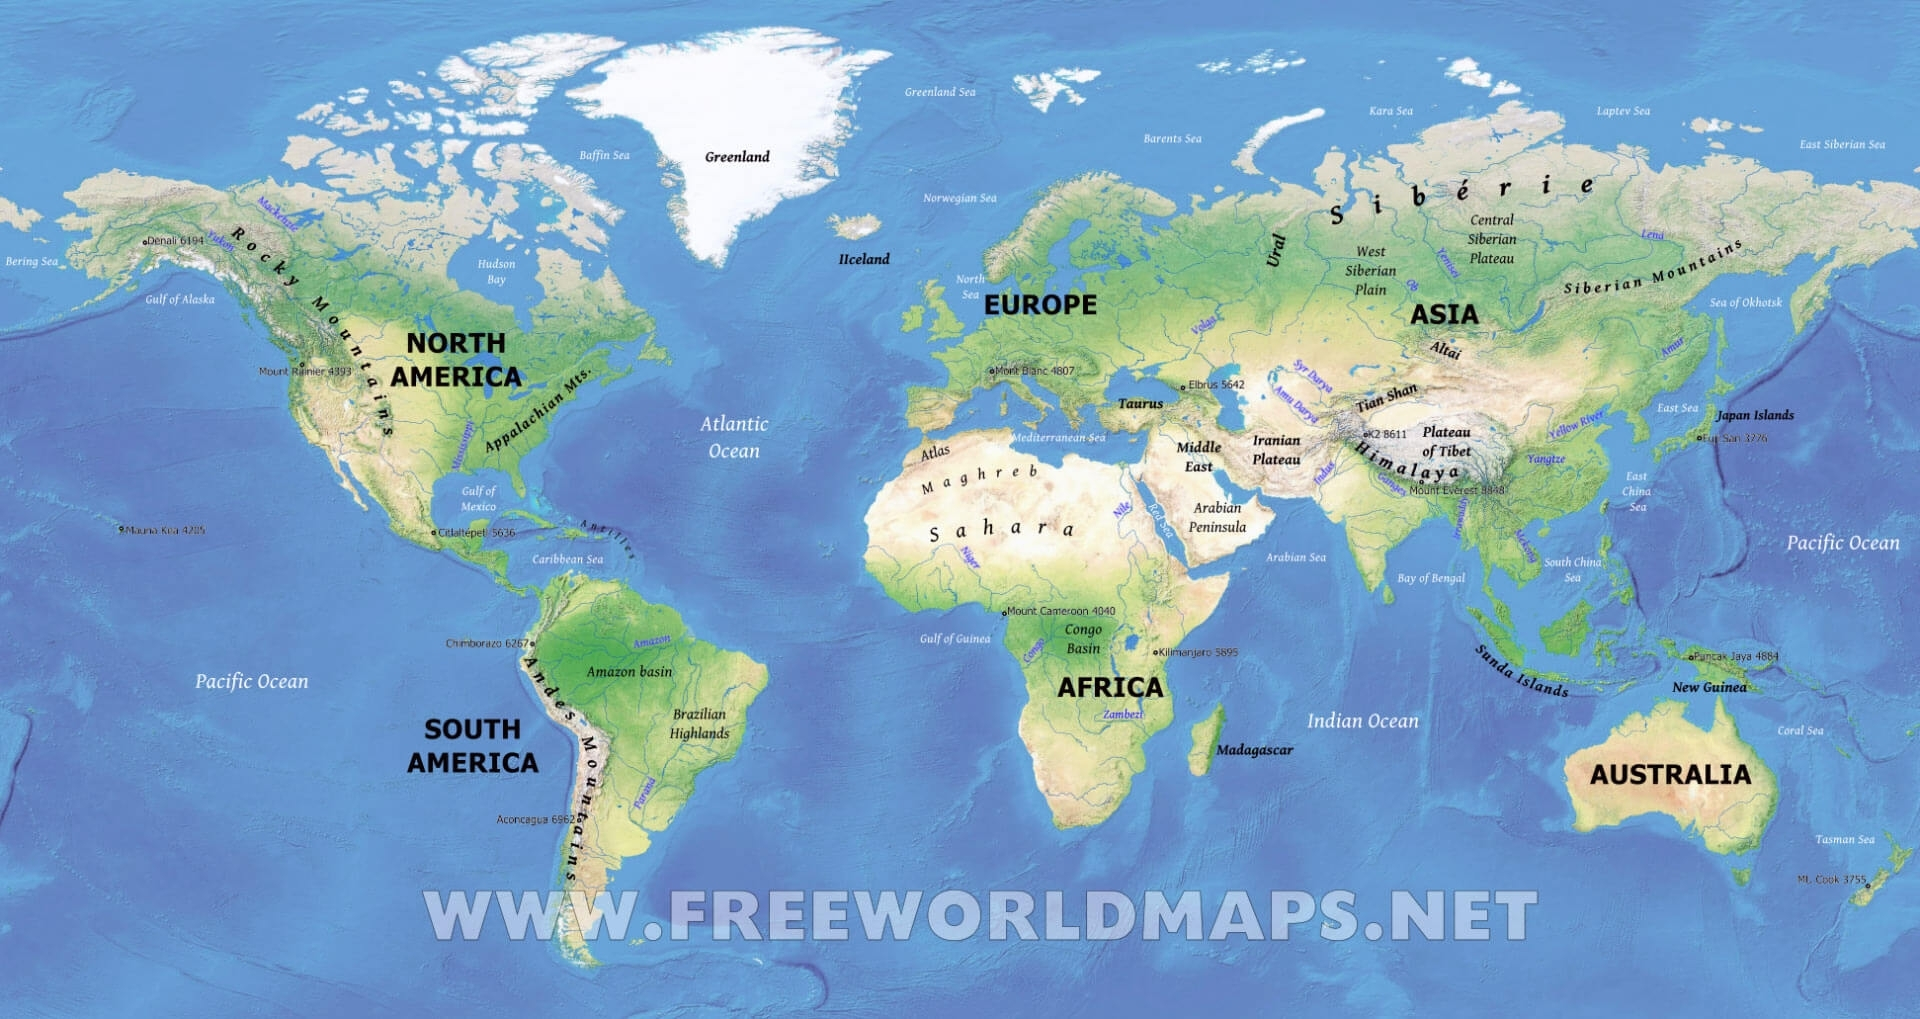 10 top map of the world hd full hd 1080p for pc background 10 brand new and newest map of the world hd for desktop computer with full hd 1080p 1920 1080 free download gumiabroncs Images